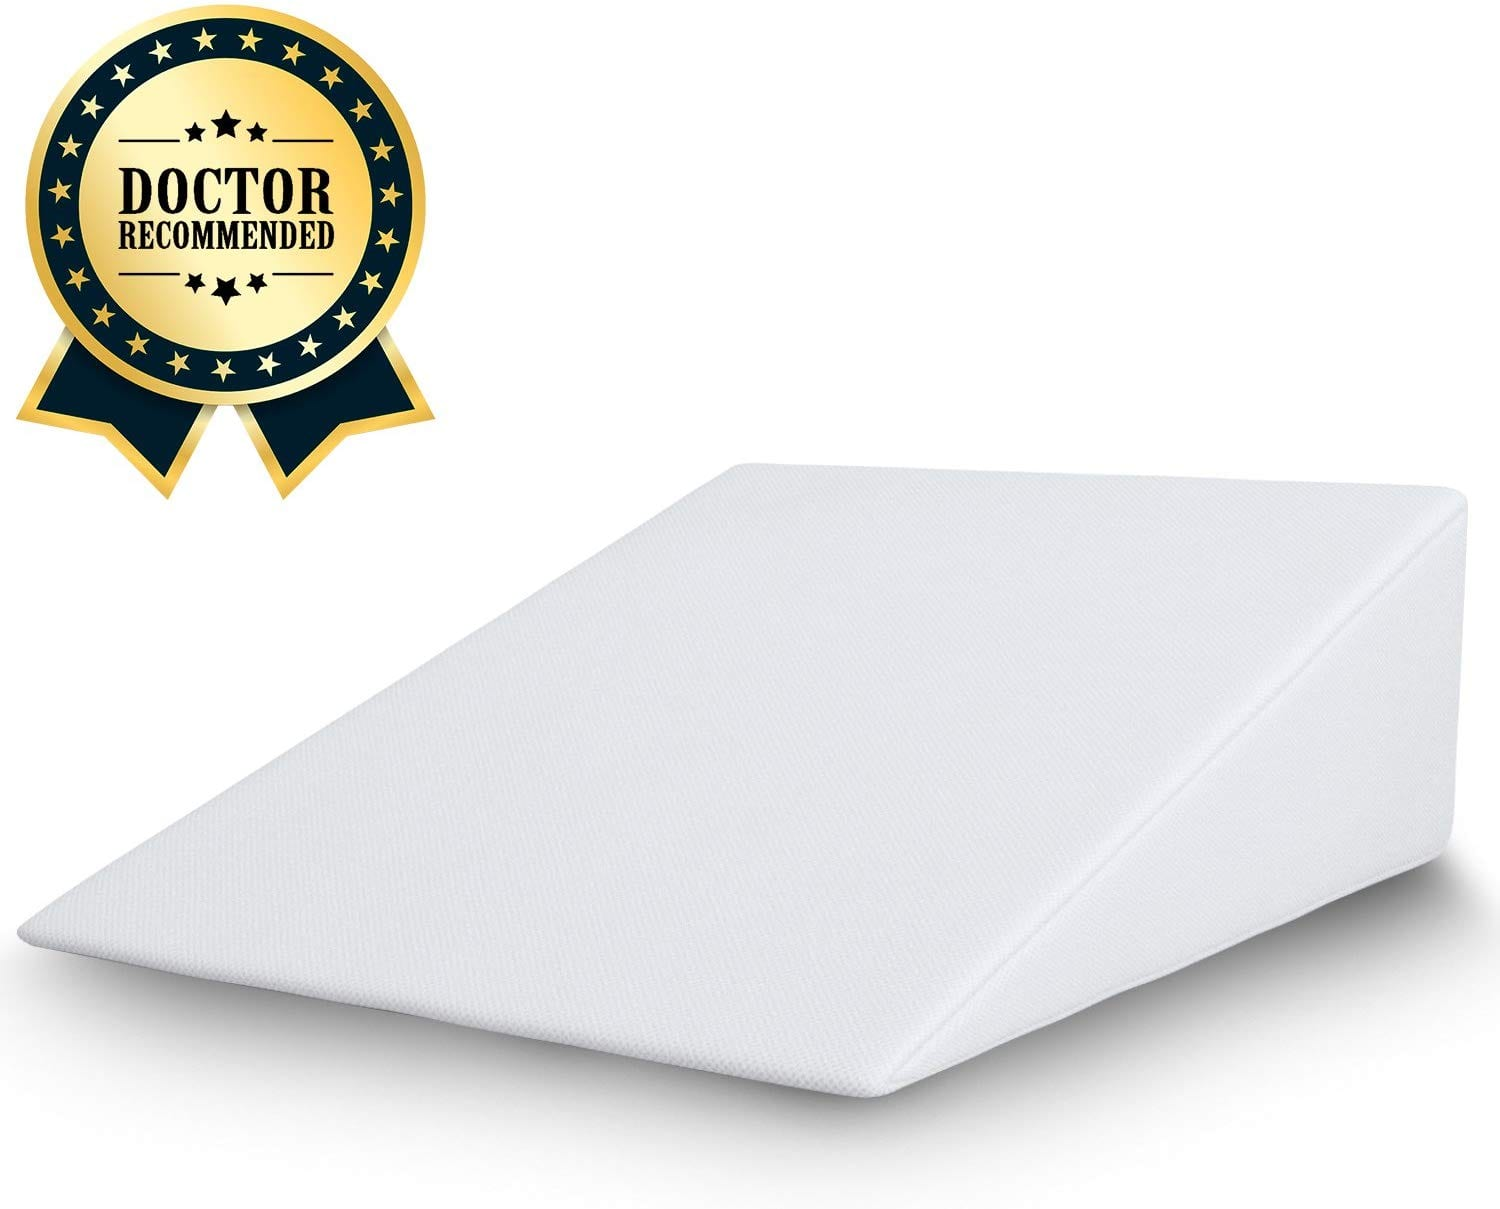 FitPlus Best Orthopedic Pillow review by www.dailysleep.org